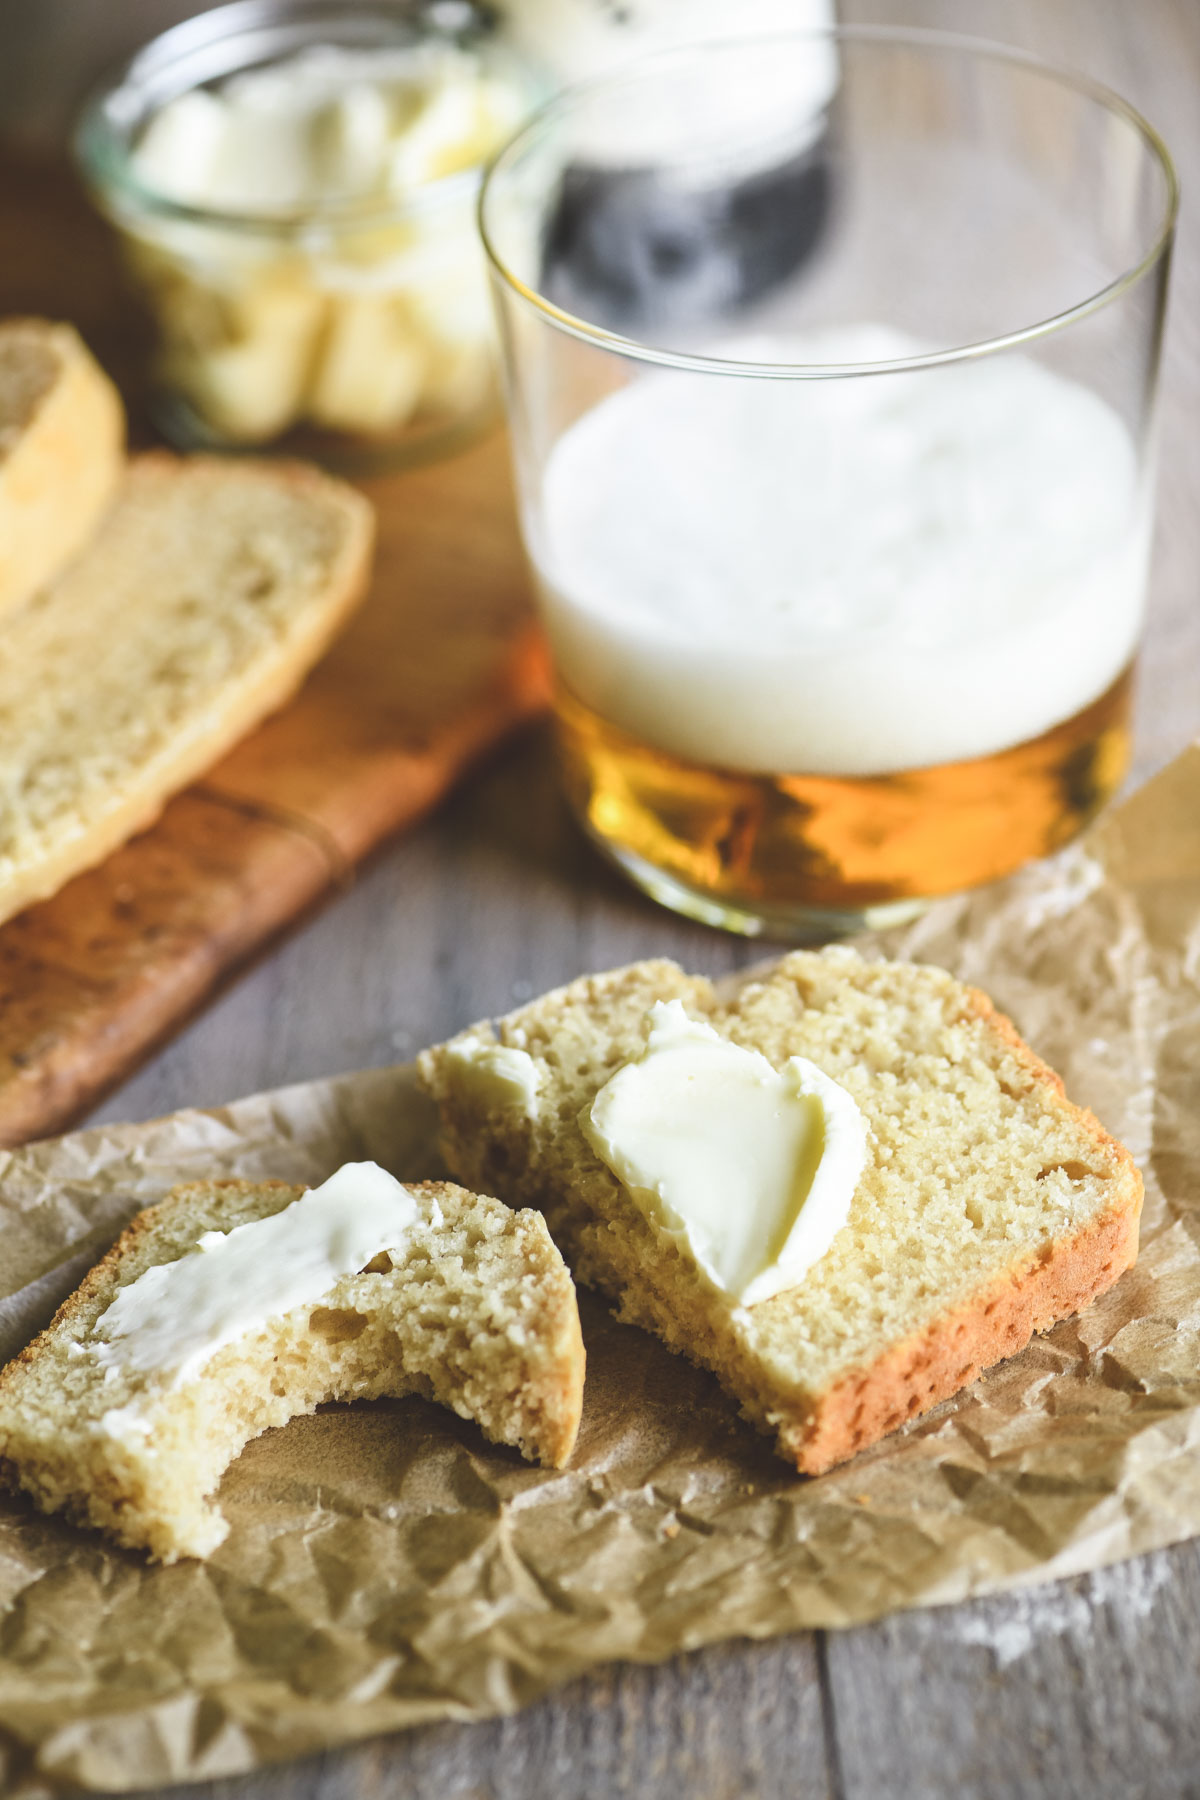 Beer bread with butter, and a glass of beer